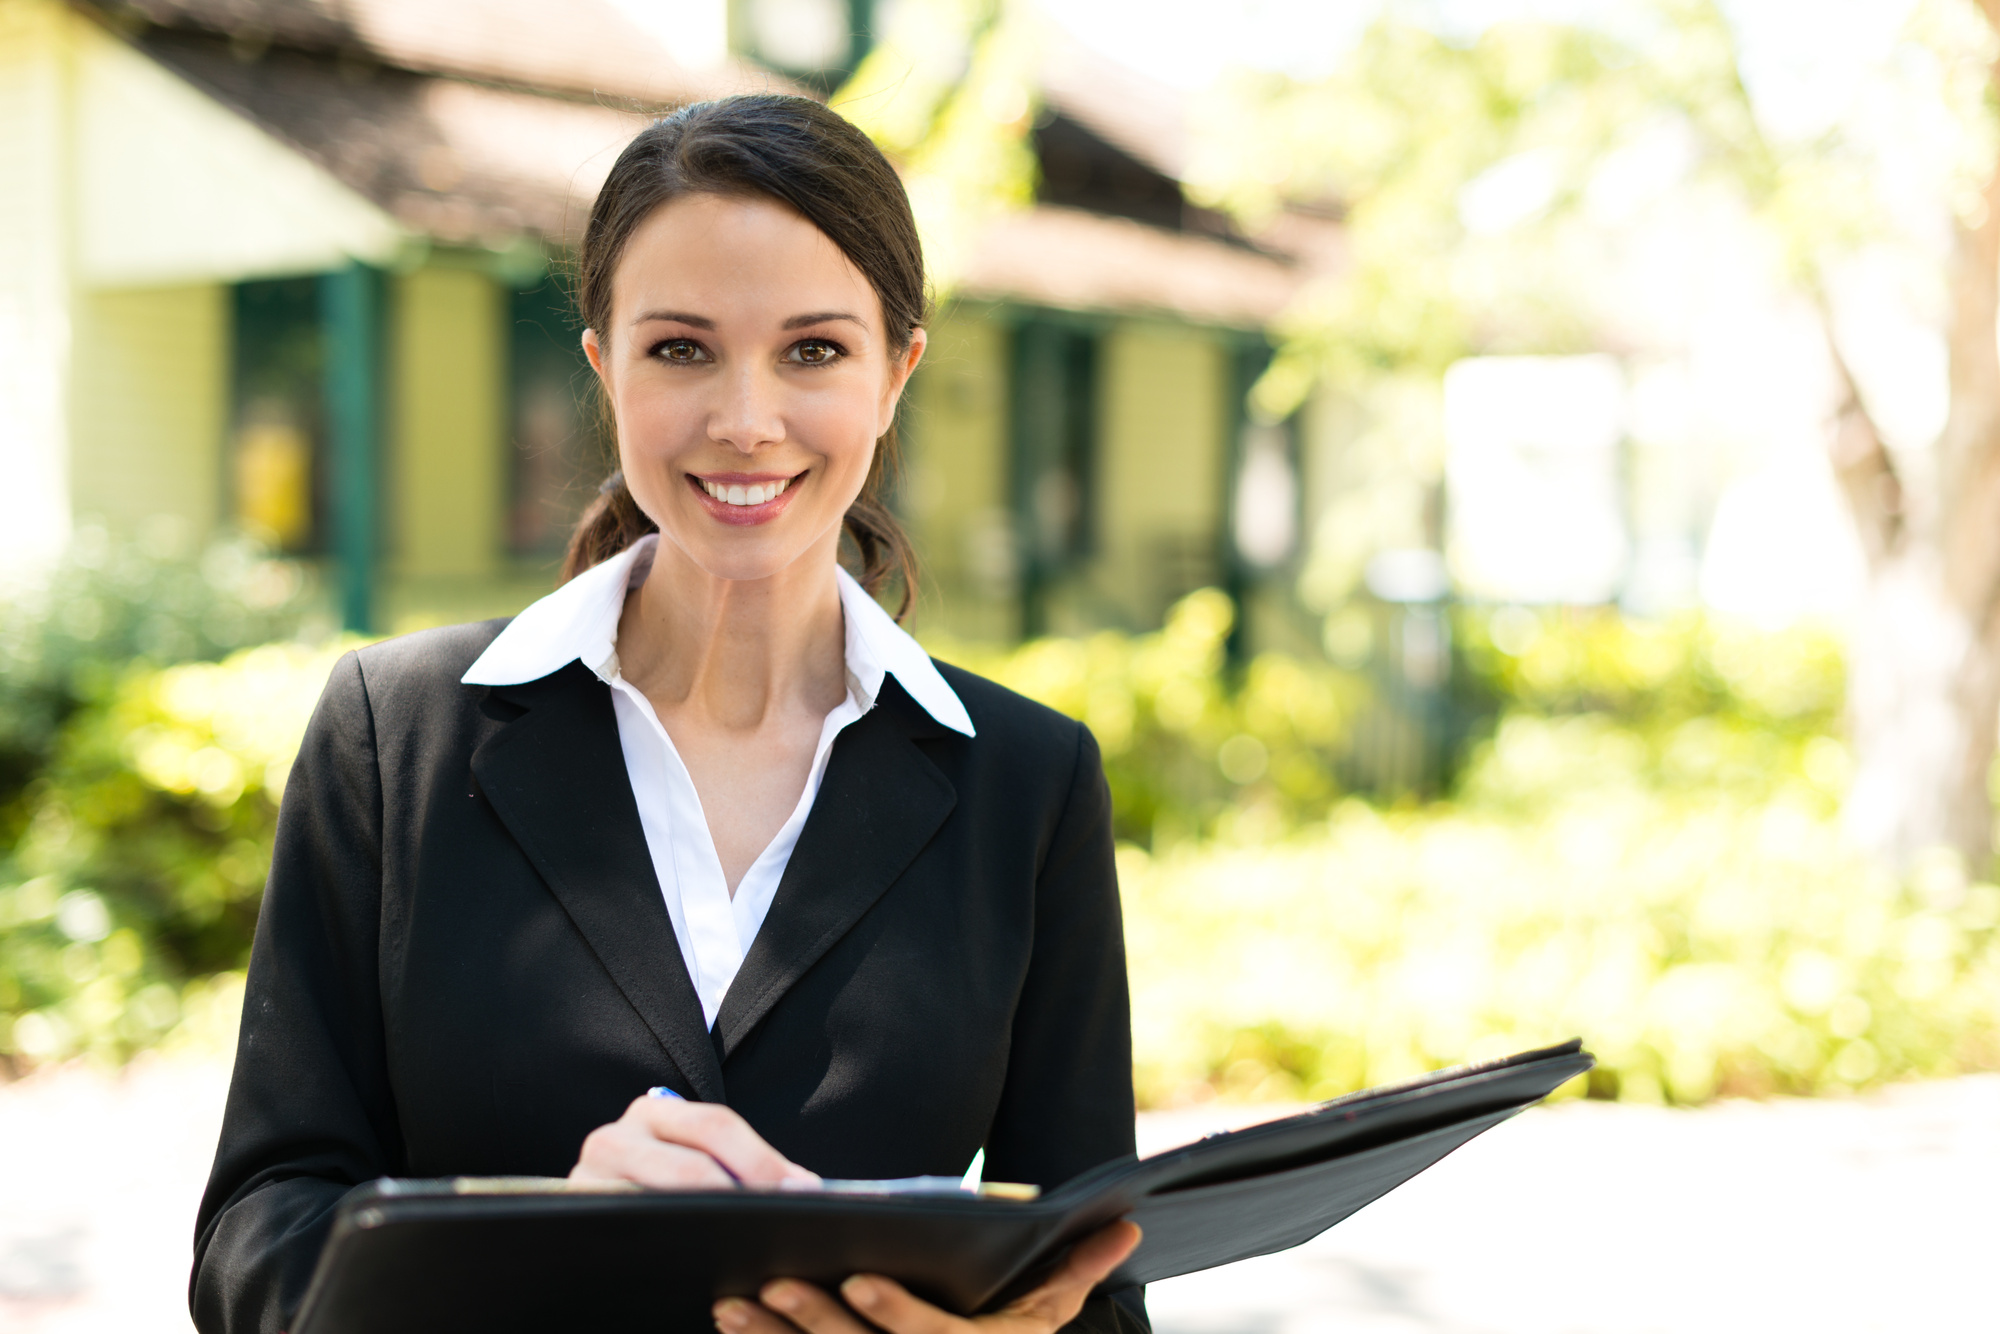 4 Benefits of Starting Your Own Real Estate Business